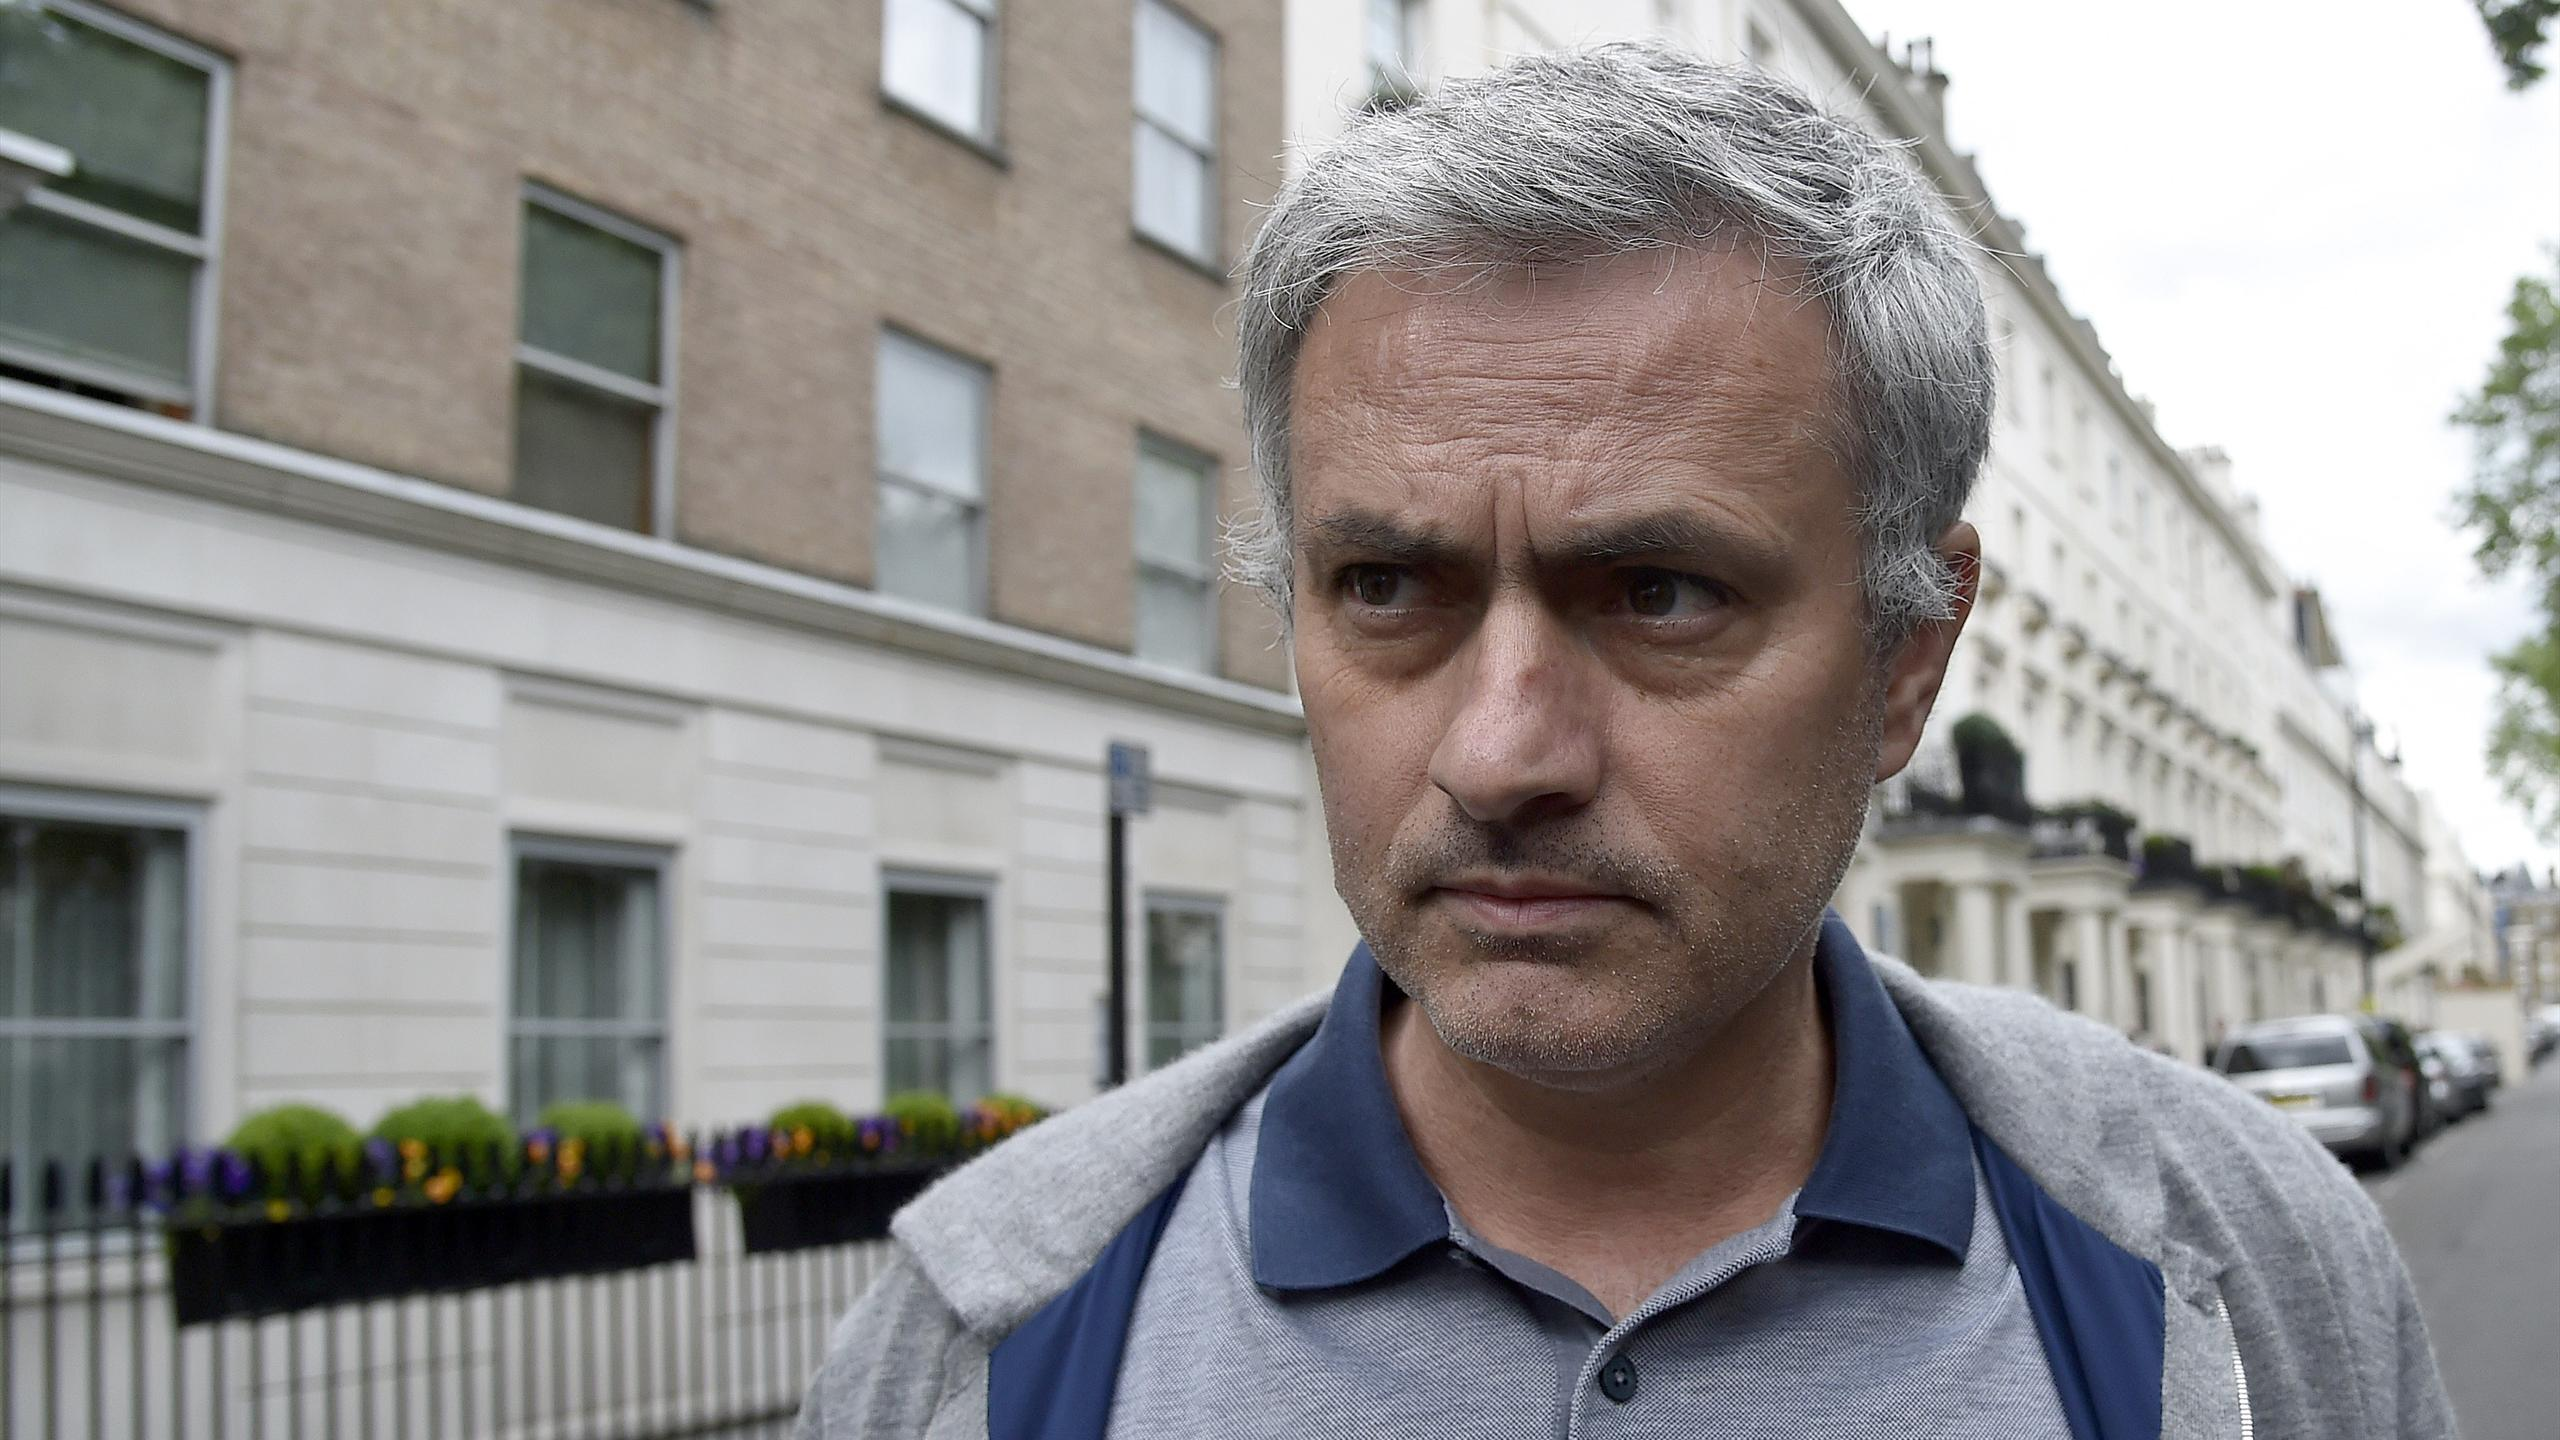 Former Chelsea manager Jose Mourinho leaves his house in London